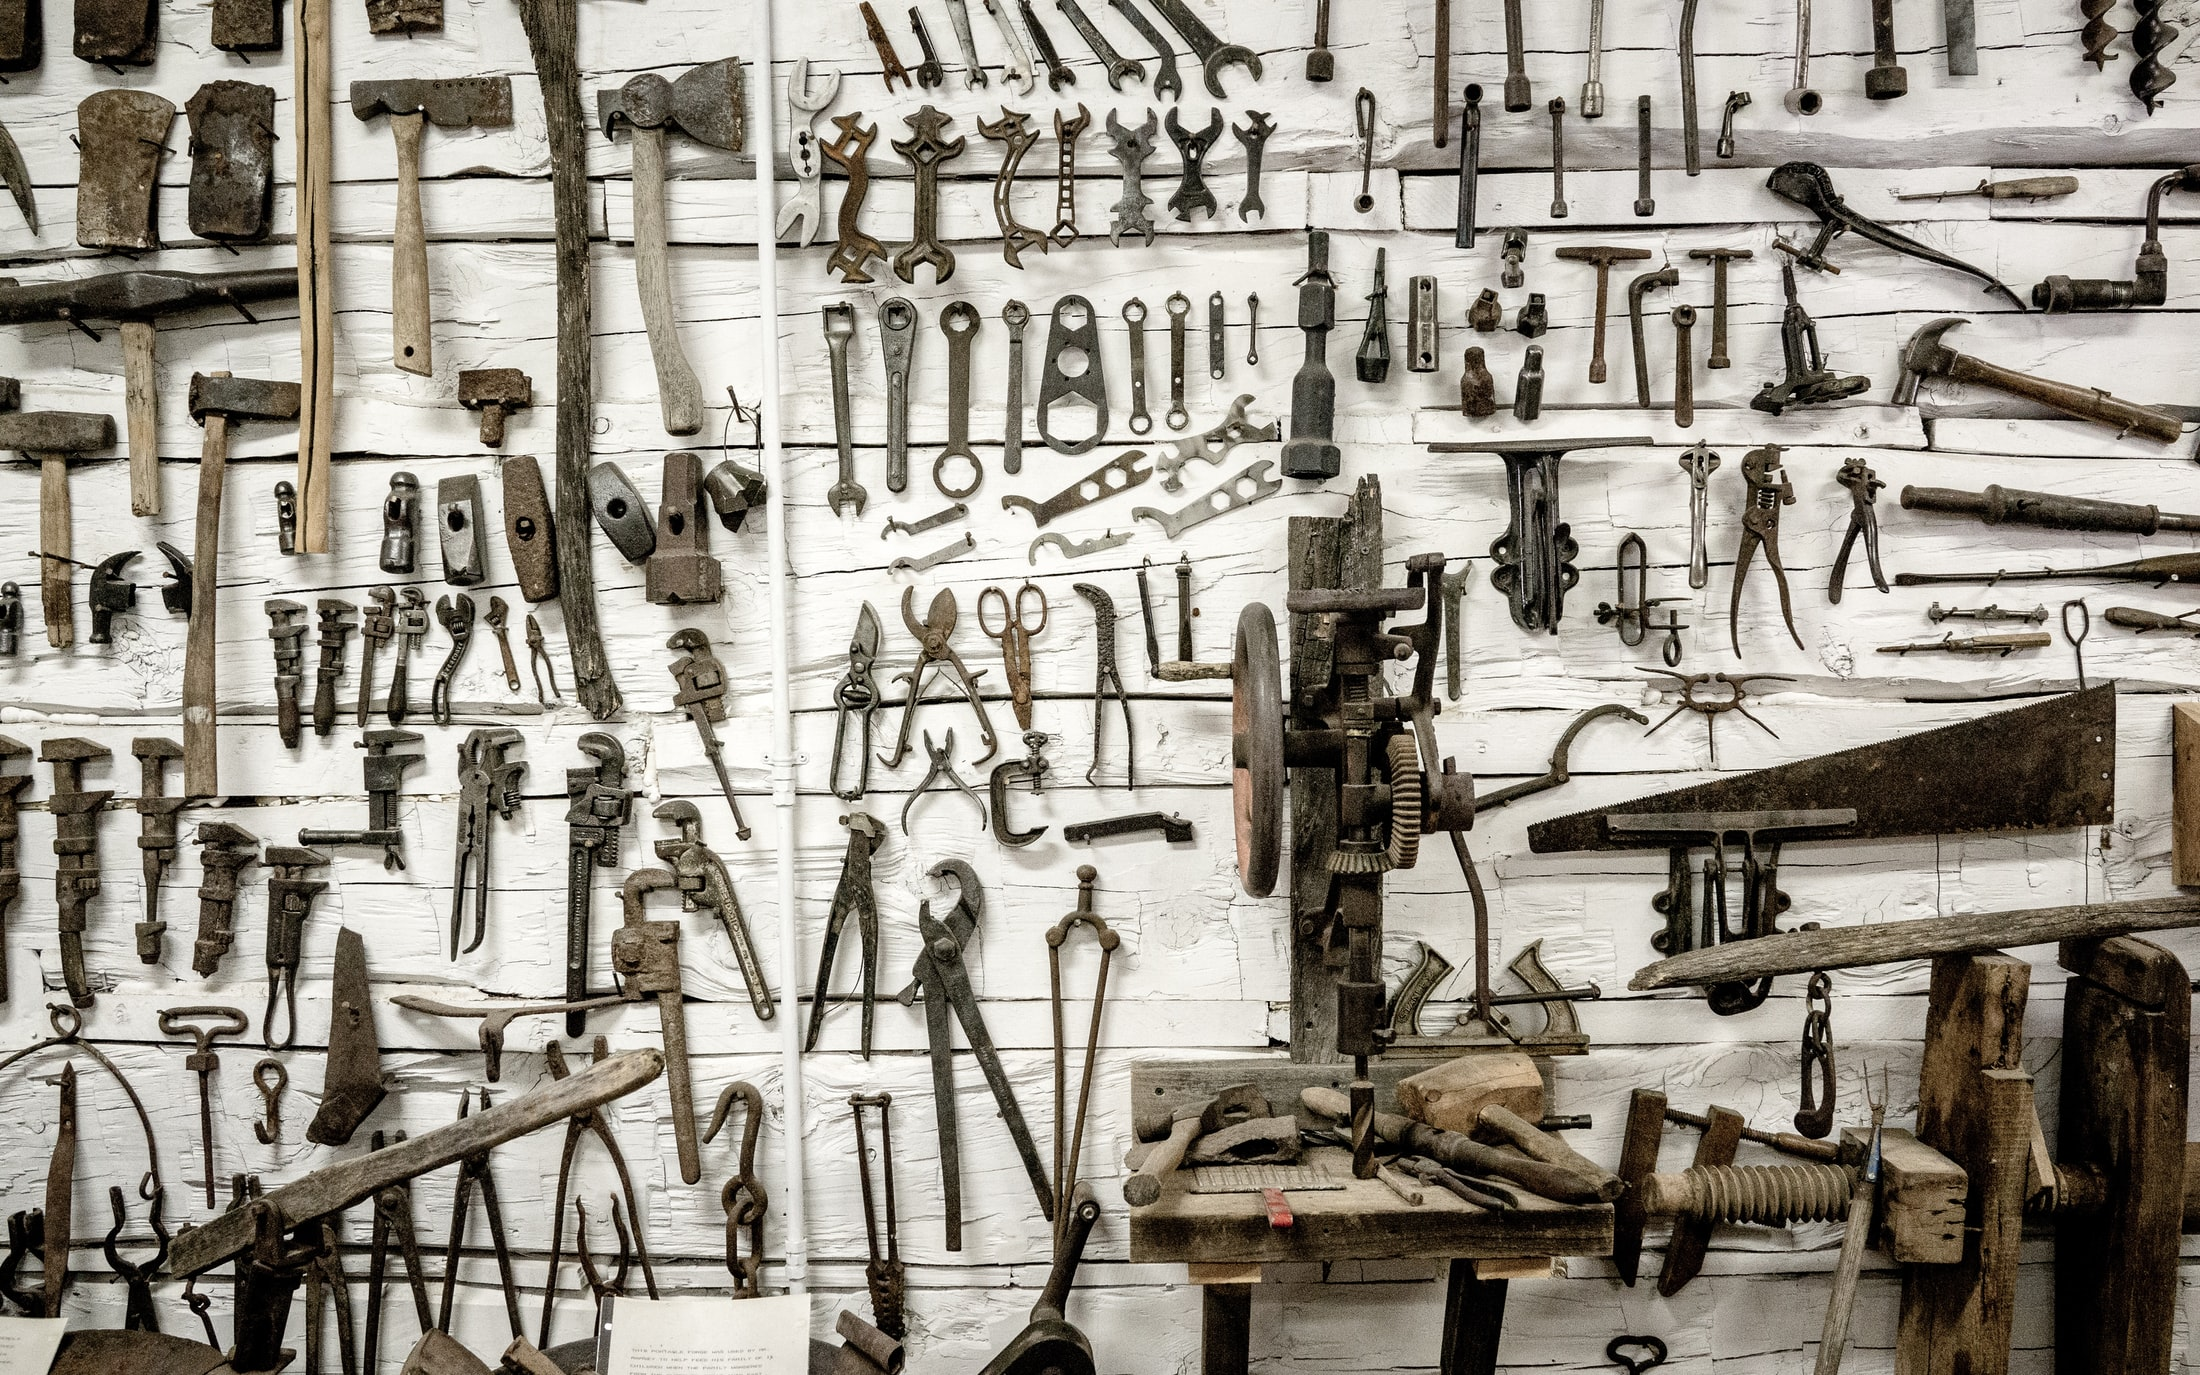 Image of Hand Tools on a Wall